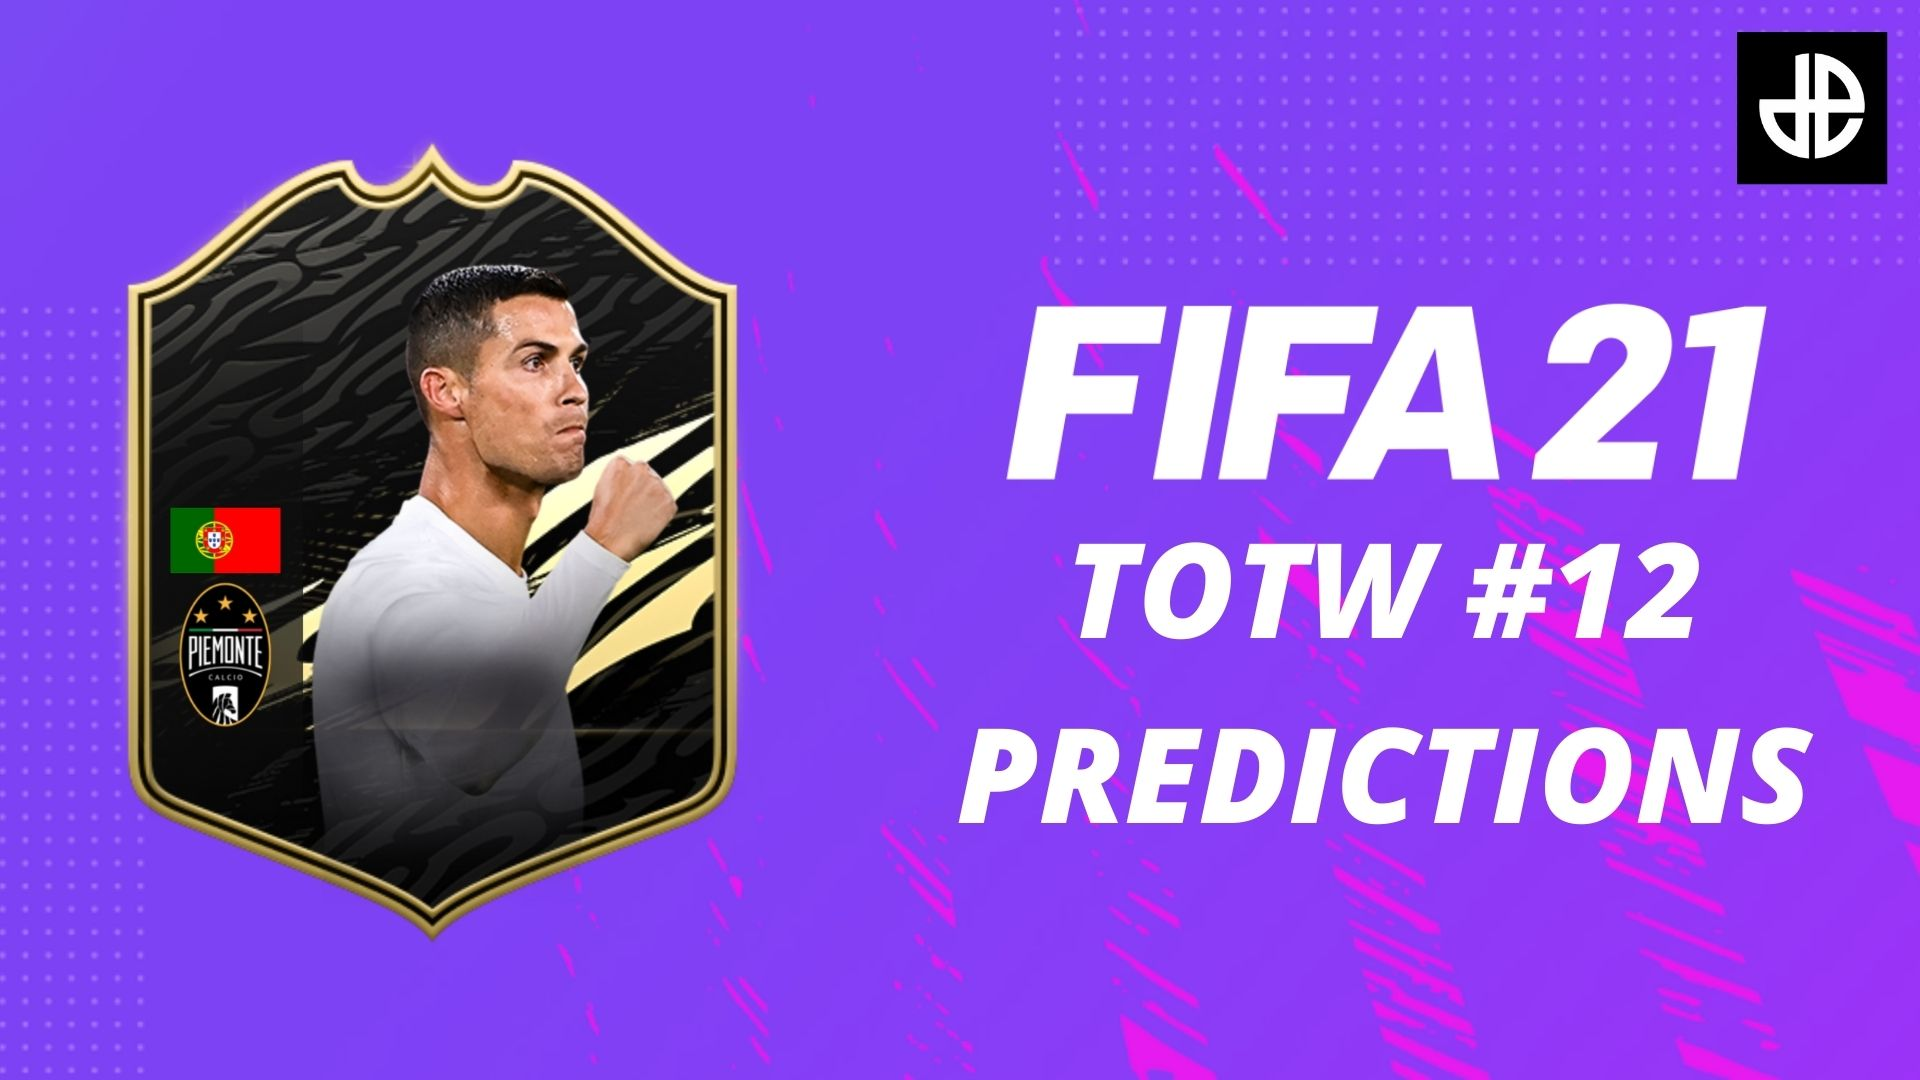 FIFA 21 TOTW 12 predictions with a Ronaldo card